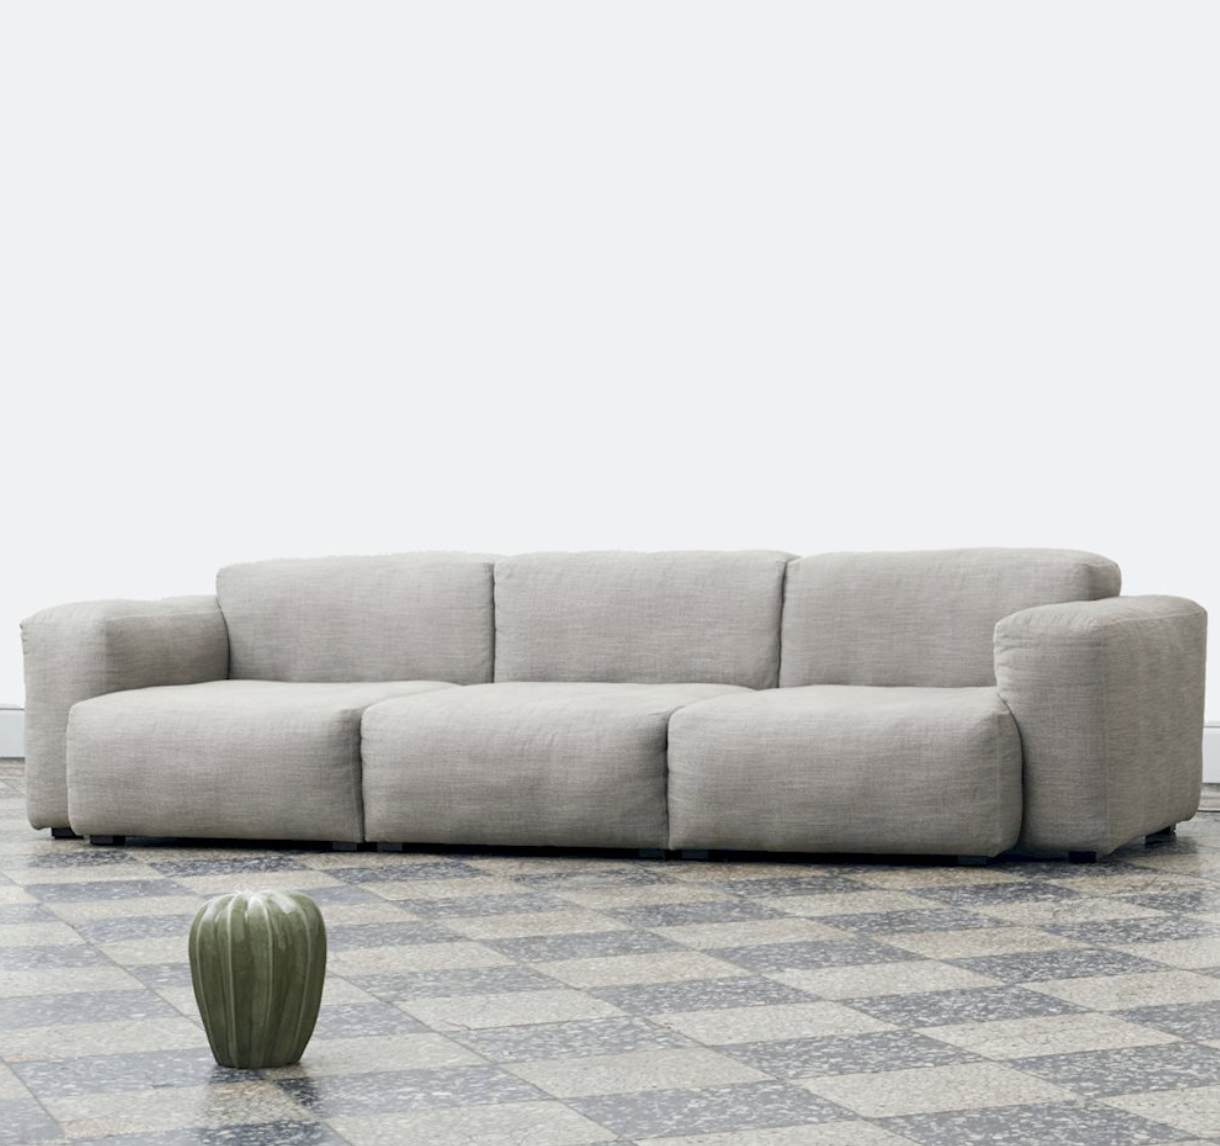 Canapé Bas Canape Mags Mags Sofa Canape Hay Hay Marseille Atelier 159 Hay Mags Mags Soft